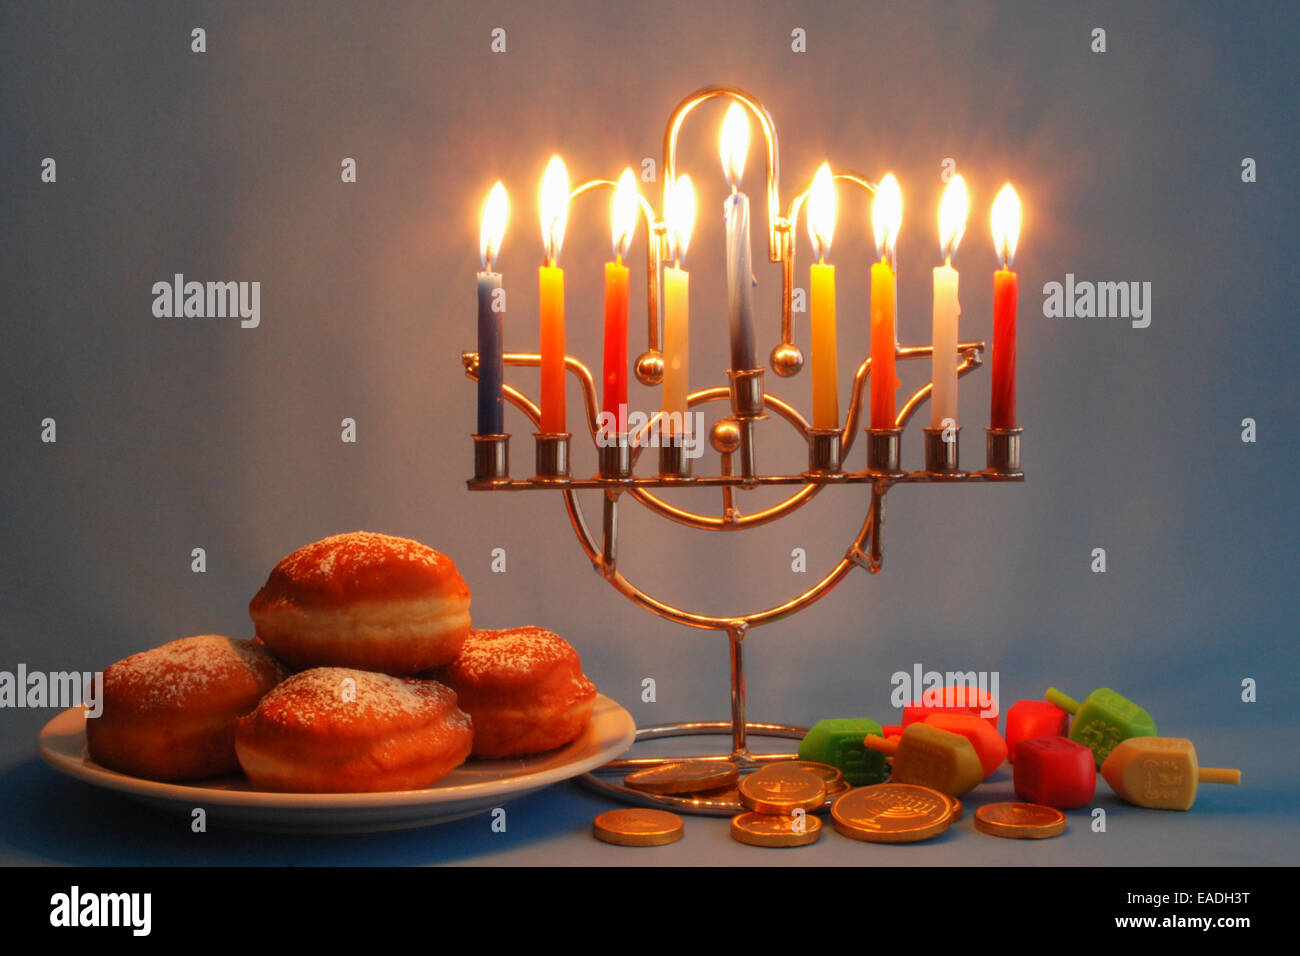 Symbols of hannukah images symbol and sign ideas symbols of hanukkah holyday menorah with candles donuts symbols of hanukkah holyday menorah with candles donuts biocorpaavc